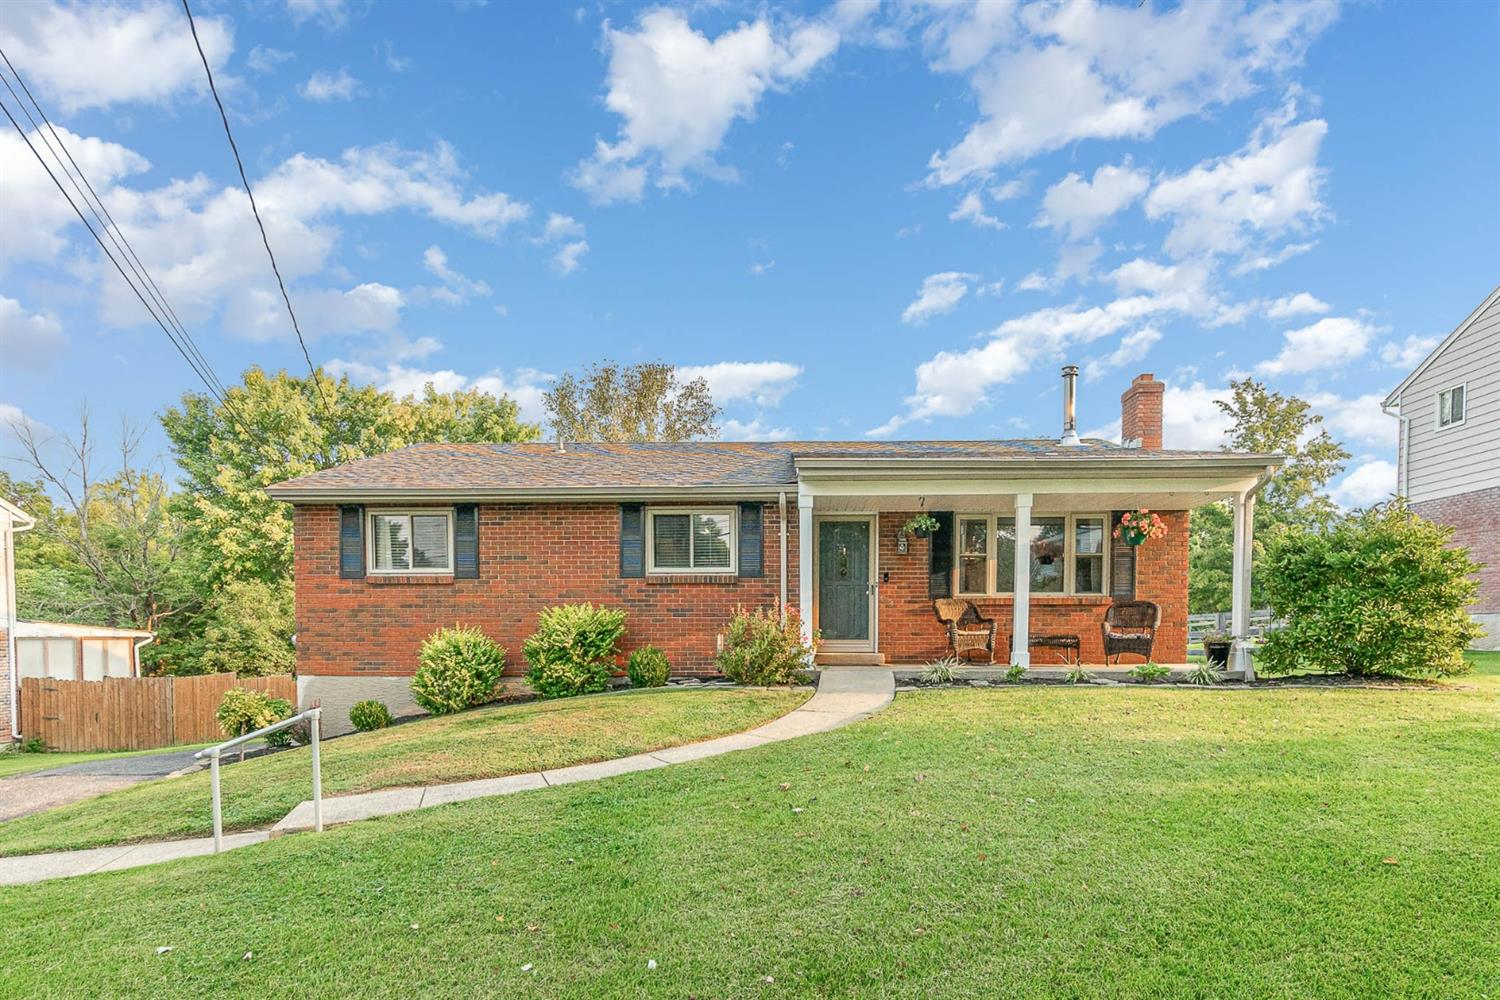 5920 Jessup Road, Green Twp, Ohio 45247, 4 Bedrooms Bedrooms, 8 Rooms Rooms,3 BathroomsBathrooms,Single Family Residence,For Sale,Jessup,1715457